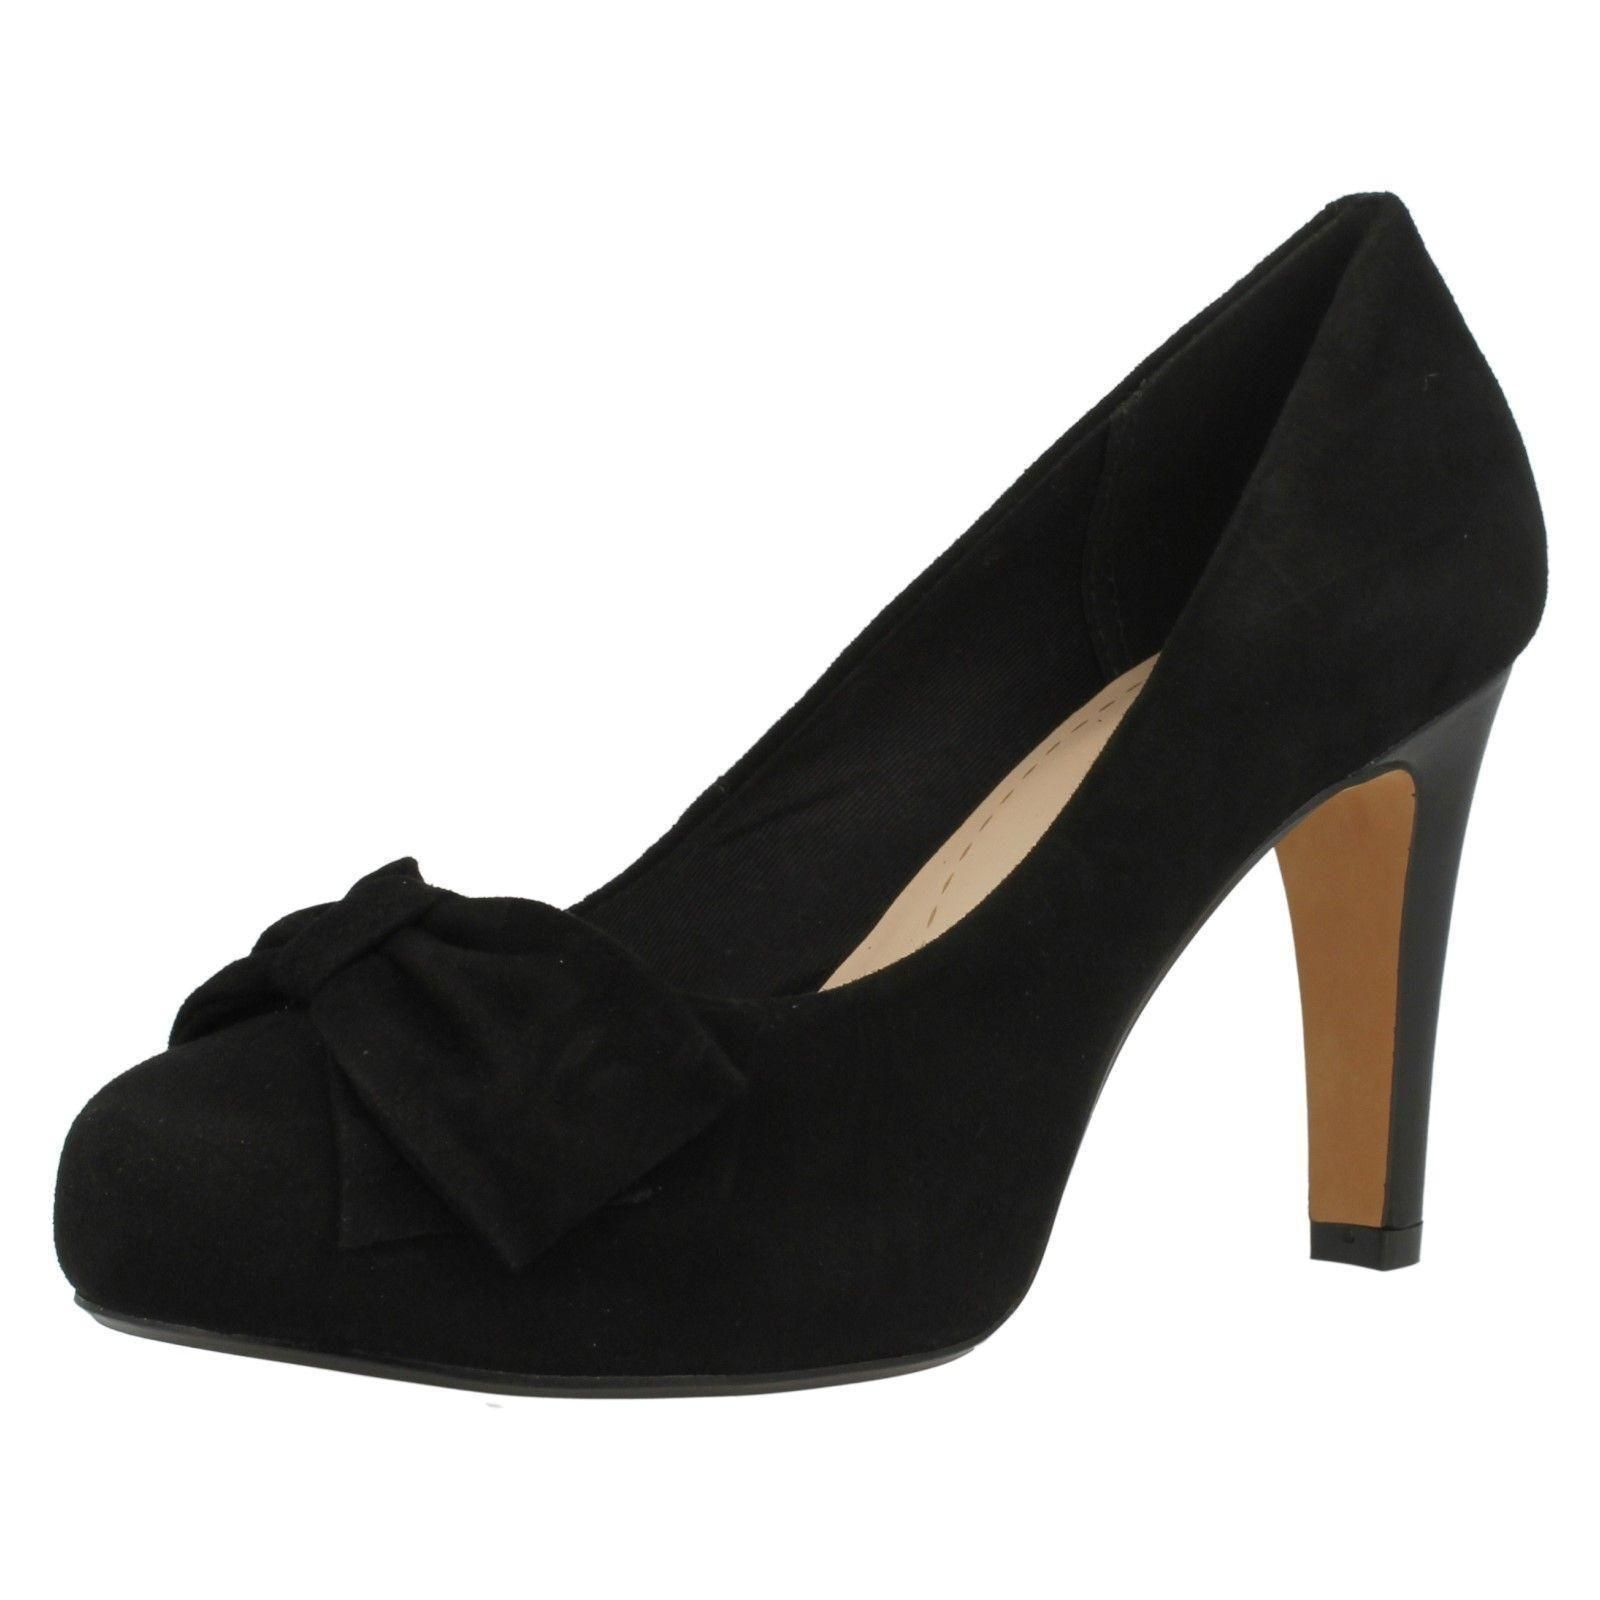 Clarks 'Carrick Tumble' Ladies Black Suede Court shoes Standard D FIt